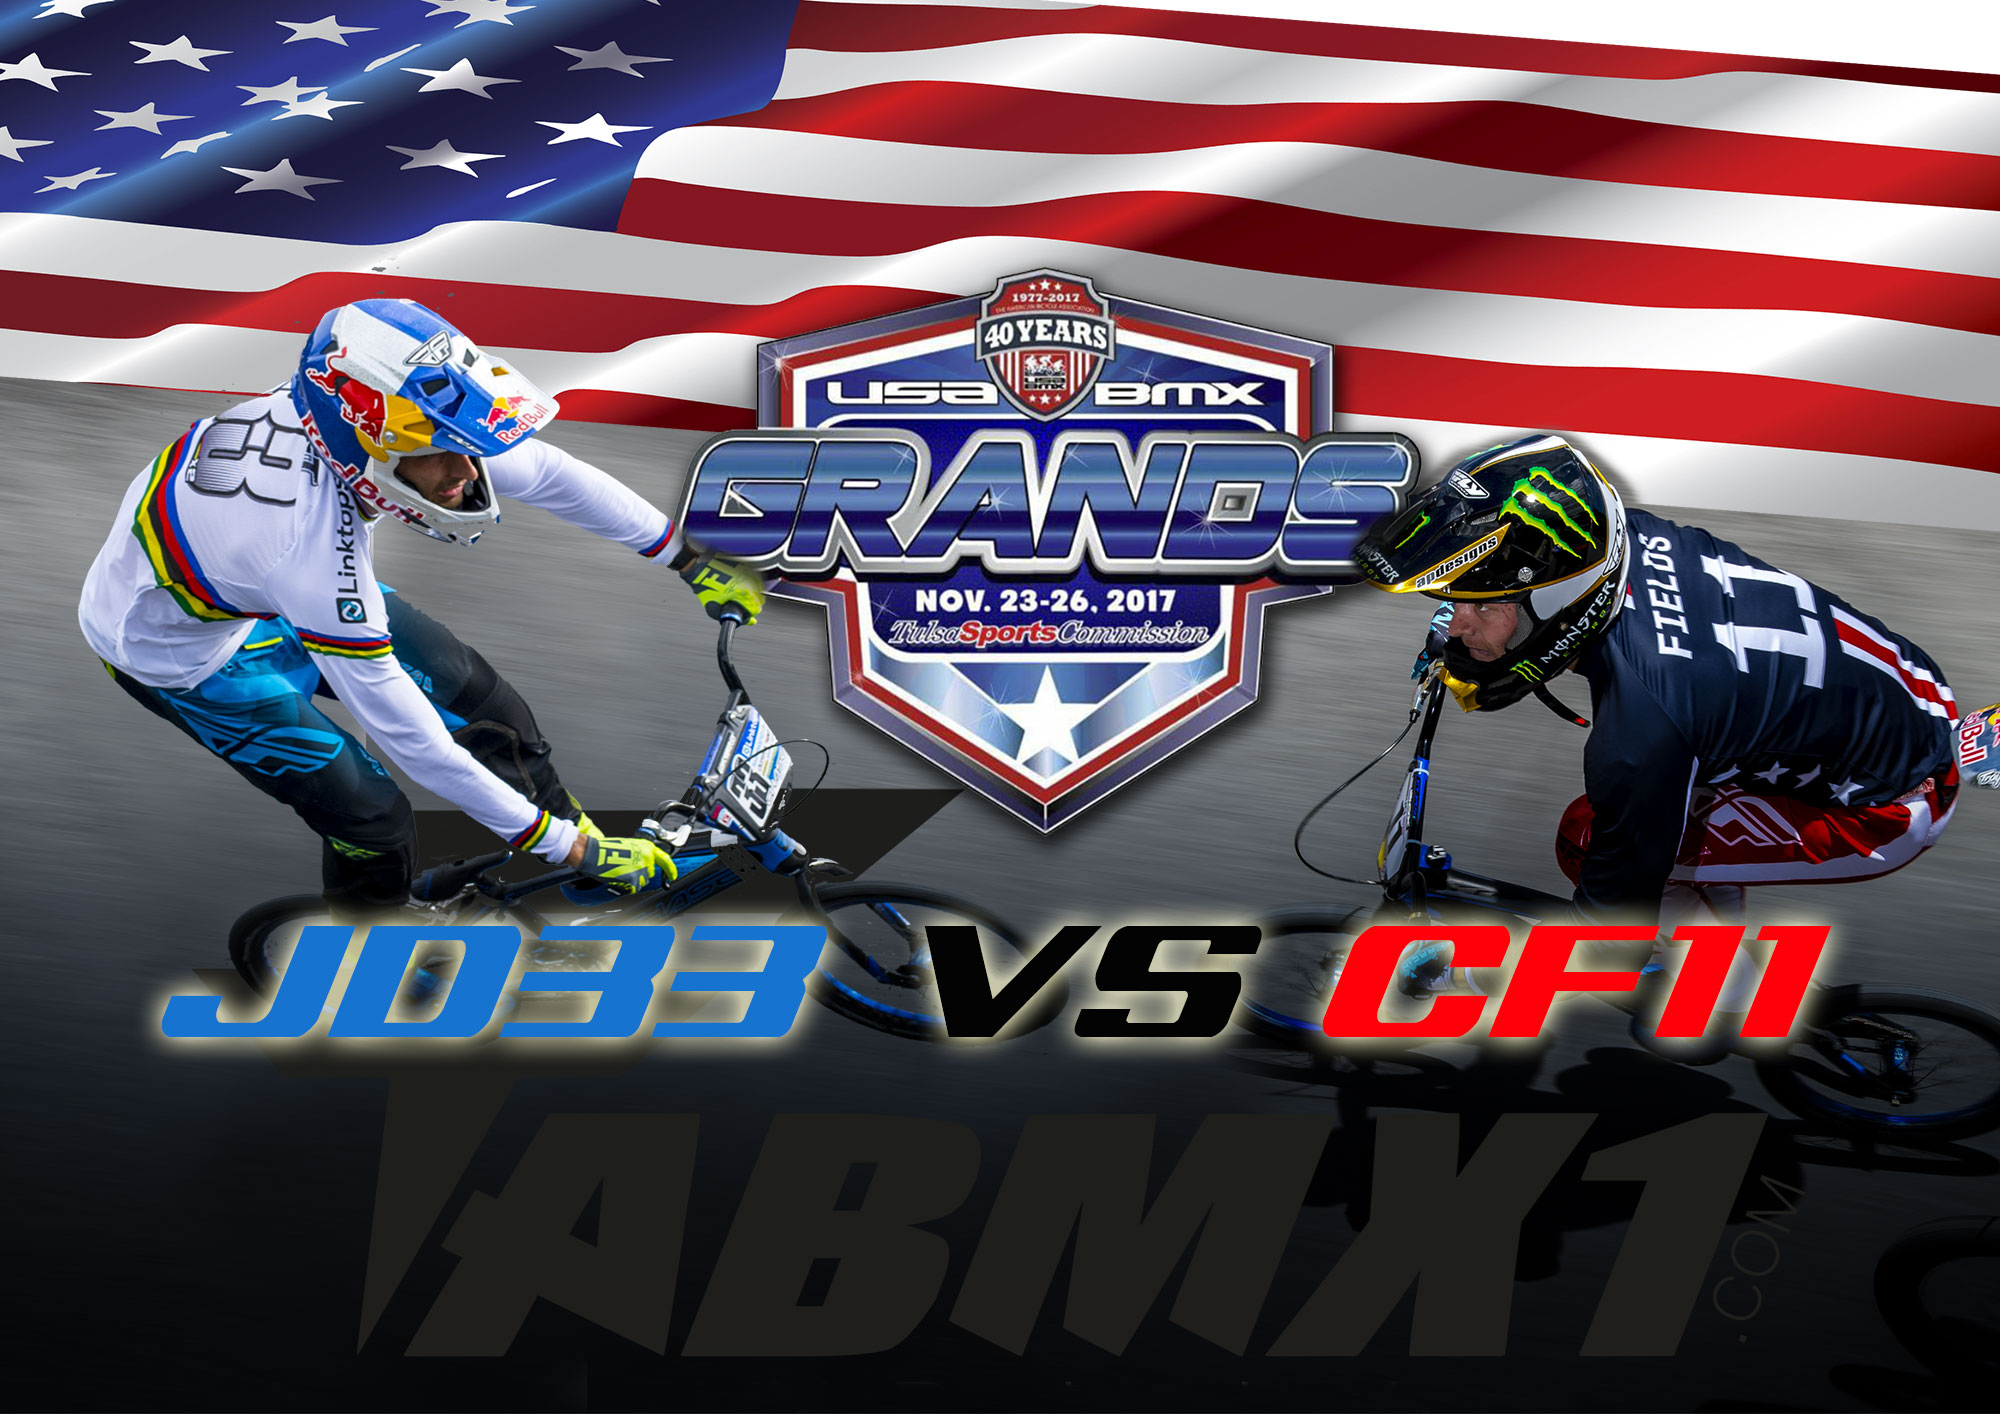 DAUDET VS FIELDS pour les USA BMX GRANDS FINALS !